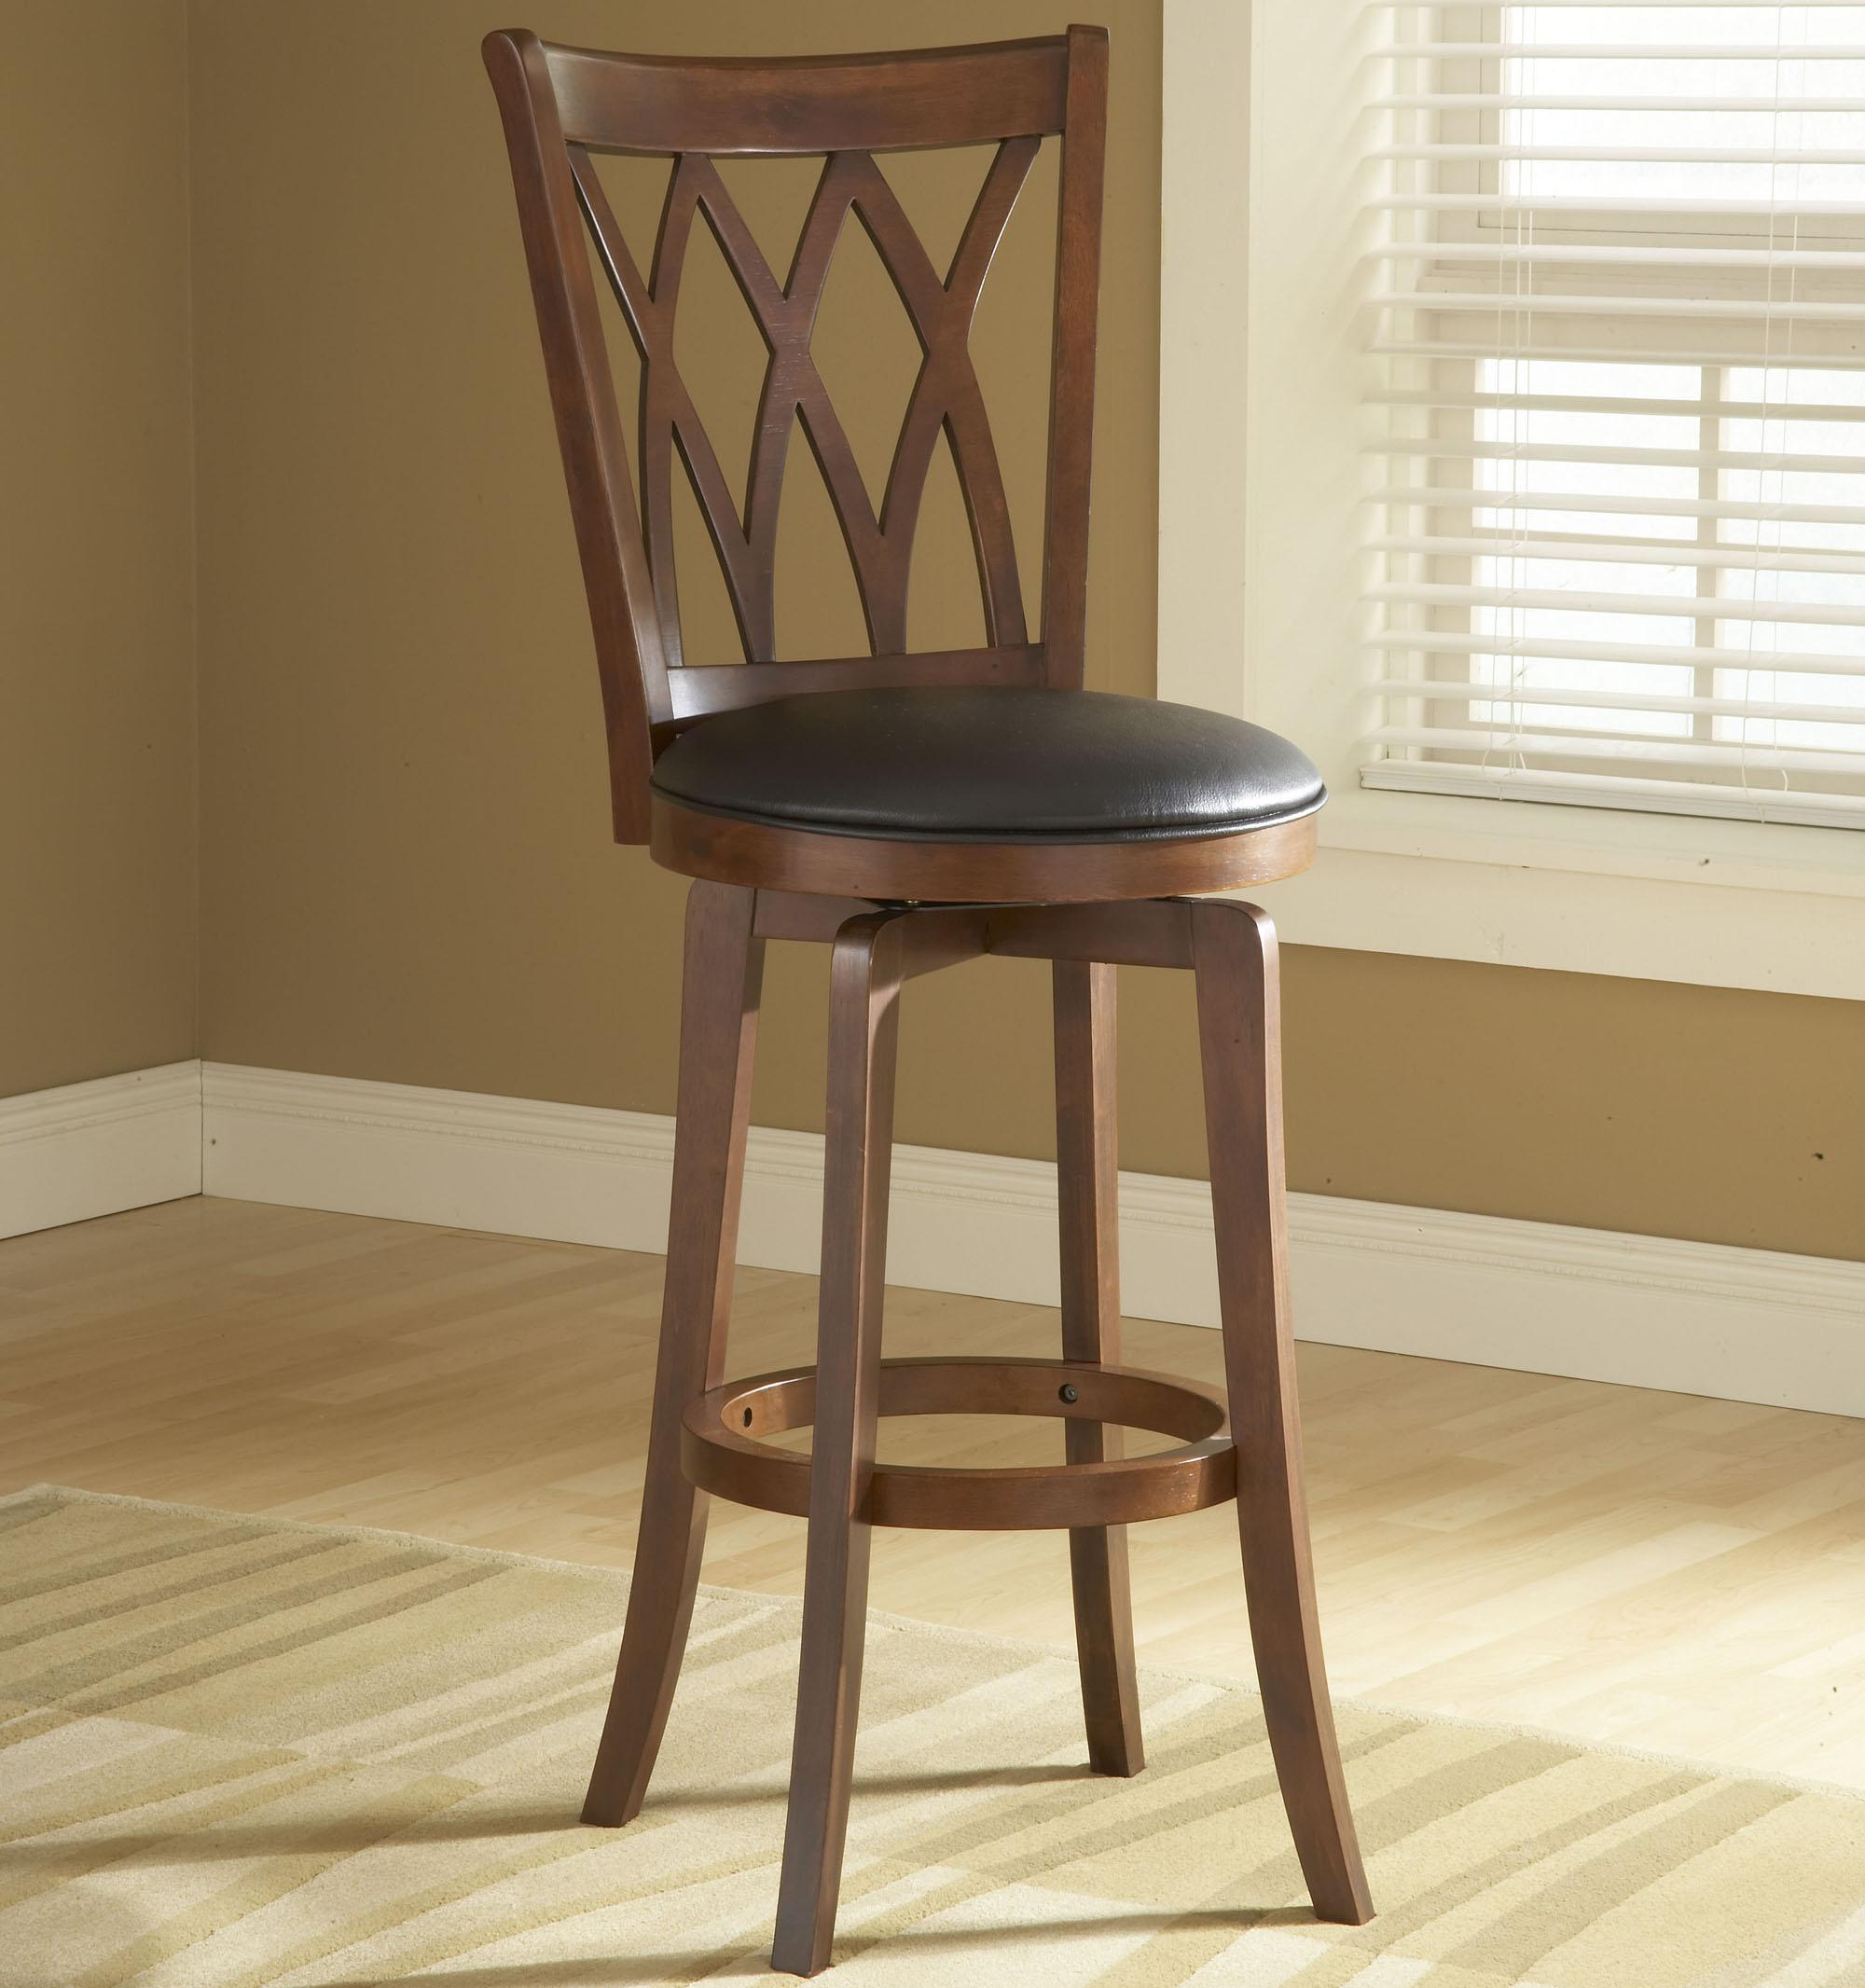 Wood Stools 24 Counter Height Mansfield Swivel Stool by